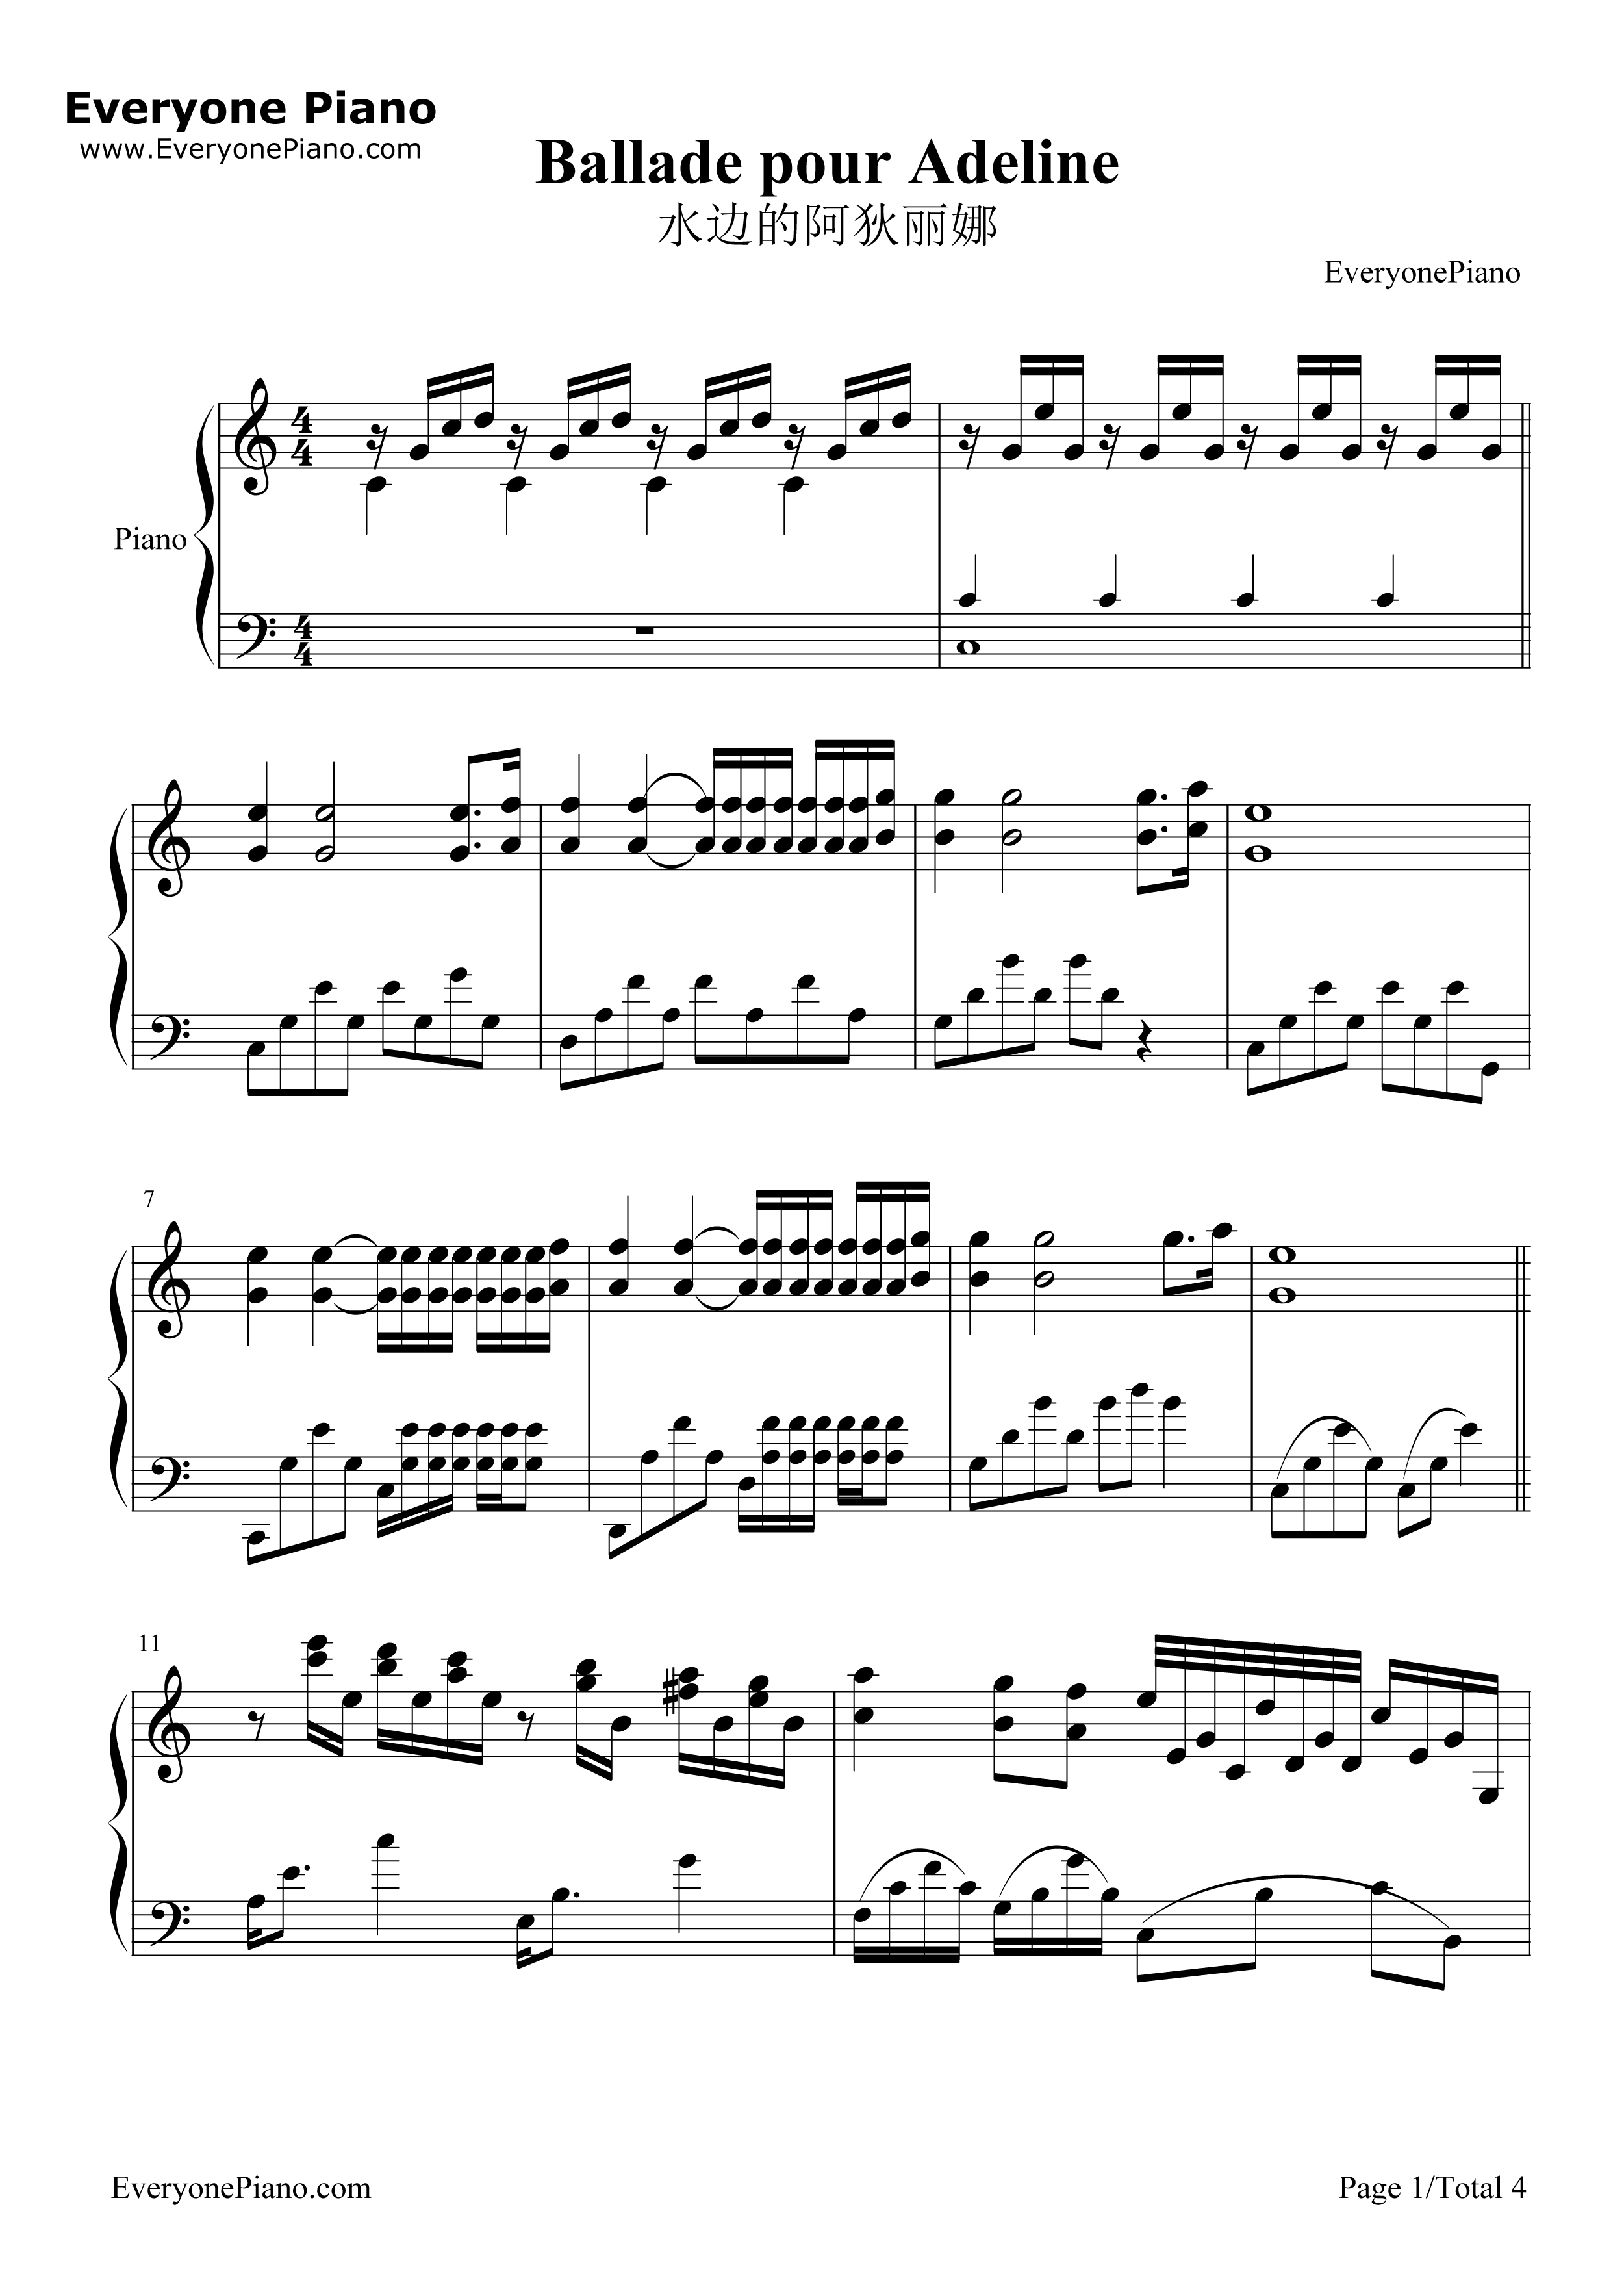 Ballade pour Adeline-Richard Clayderman Stave Preview 1-Free Piano Sheet Music u0026 Piano Chords